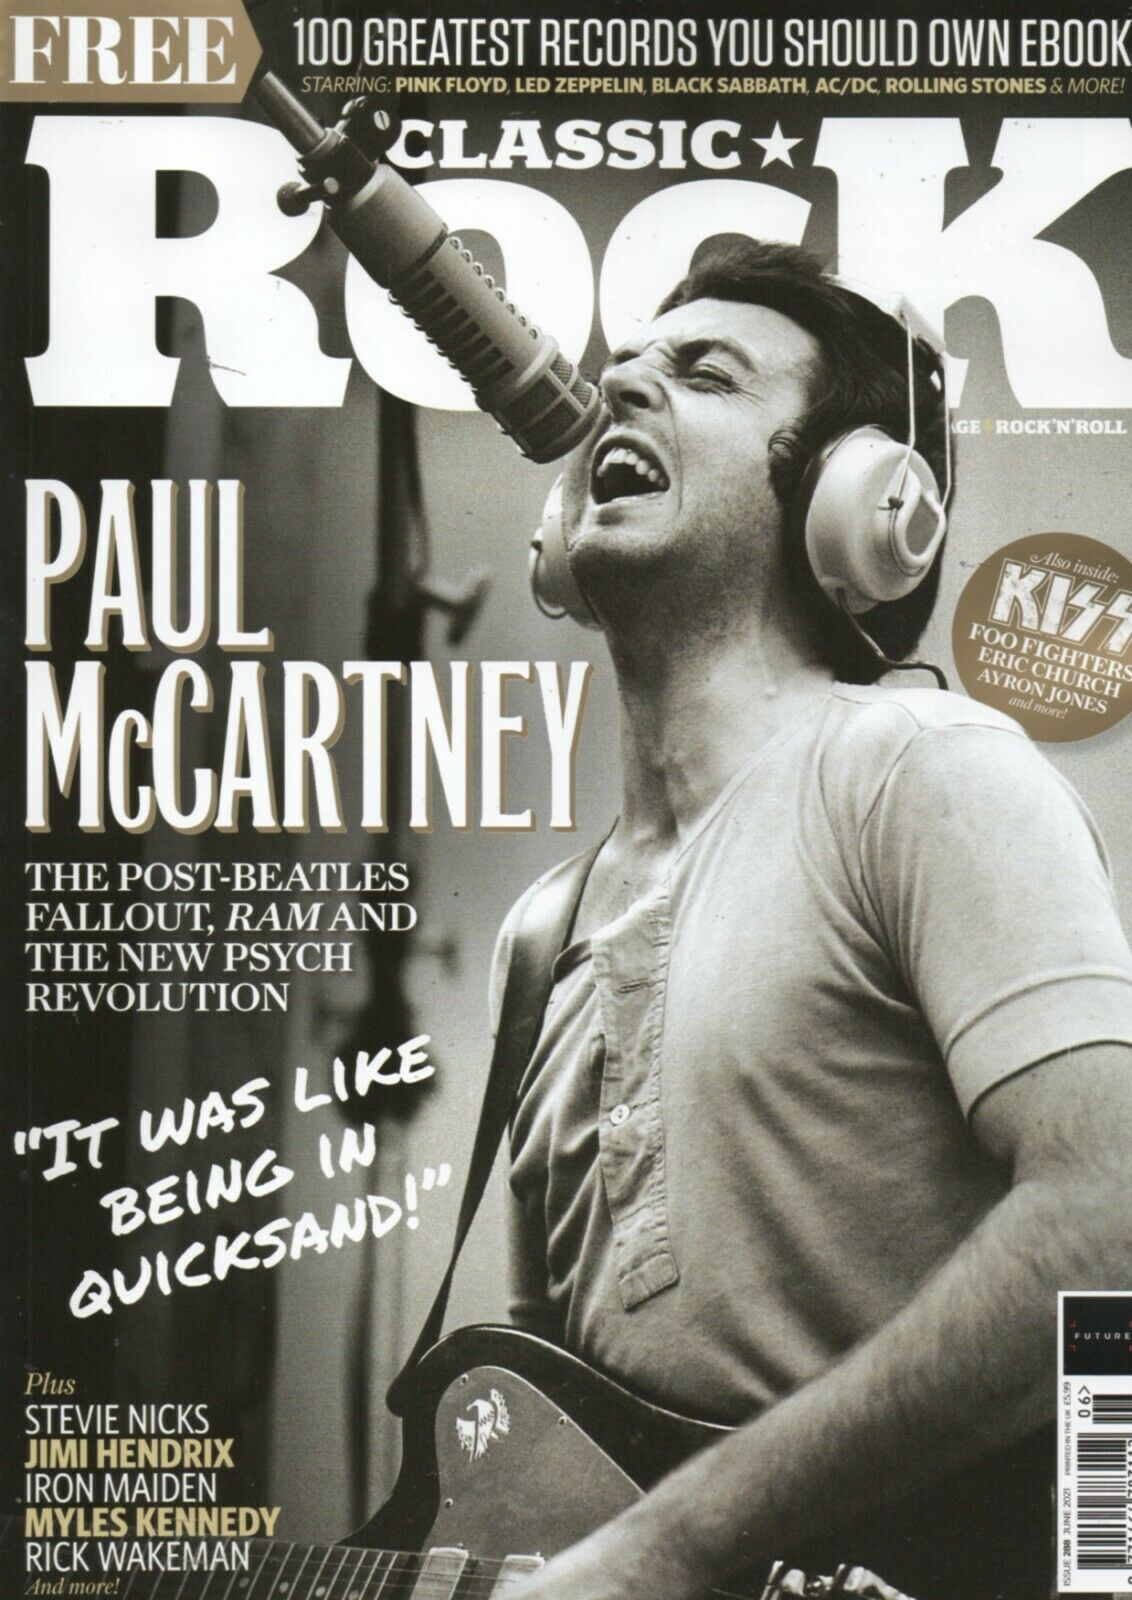 CLASSIC ROCK magazine - June 2021 | Issue #288 Paul McCartney The Beatles